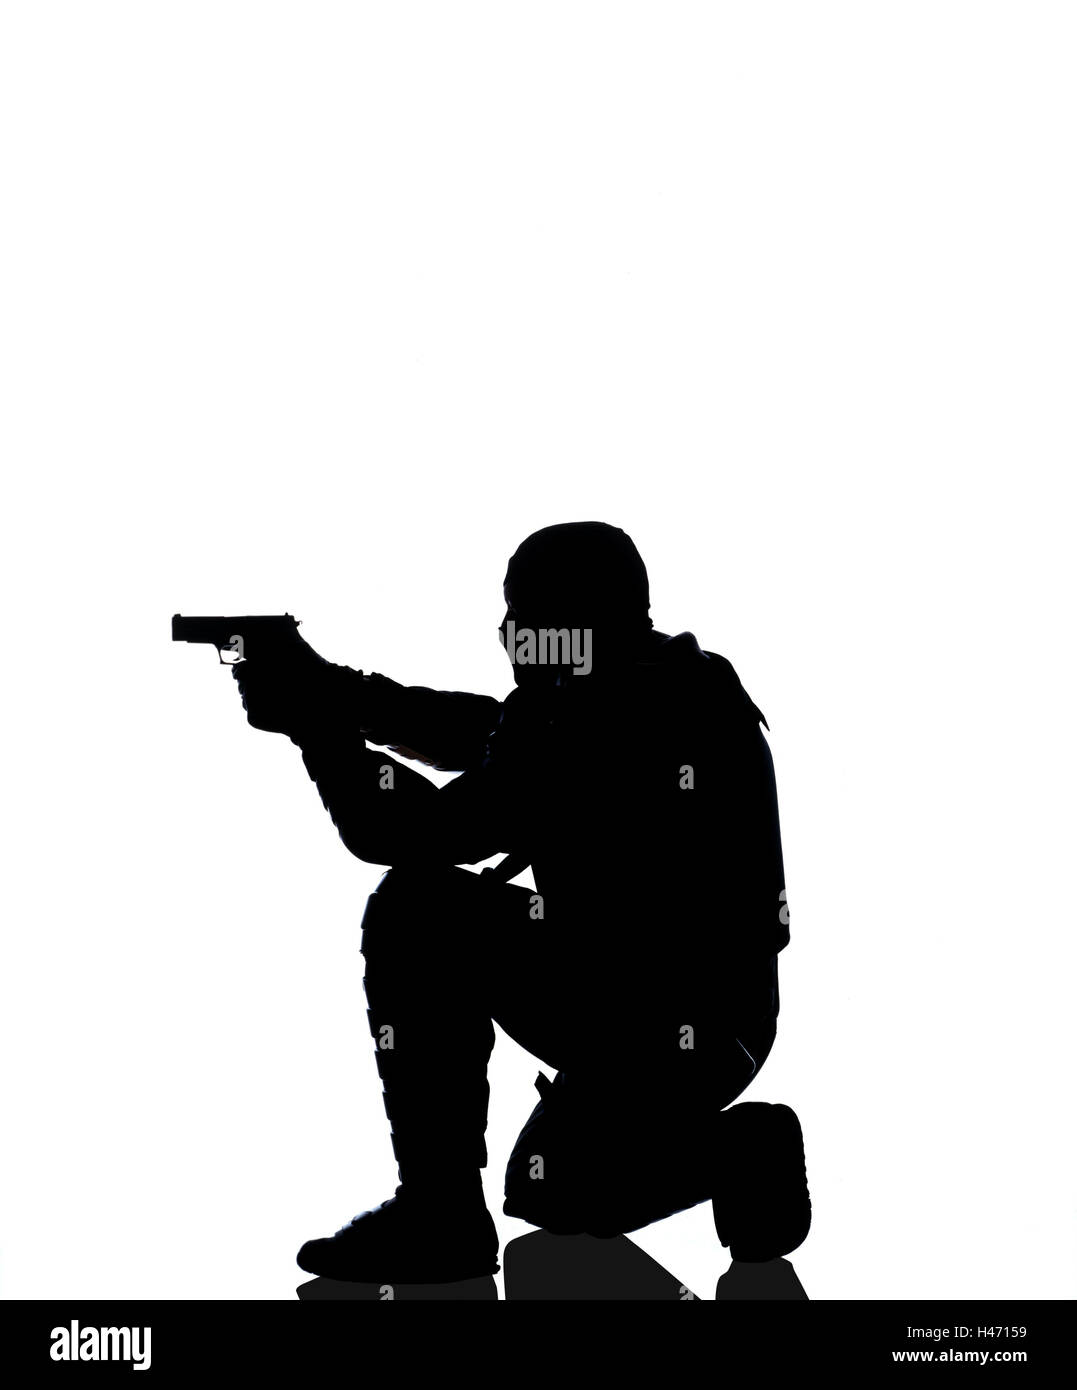 Policeman, protective clothing, shooting practise, aim, silhouette, police, occupation, man, official, police officer, - Stock Image